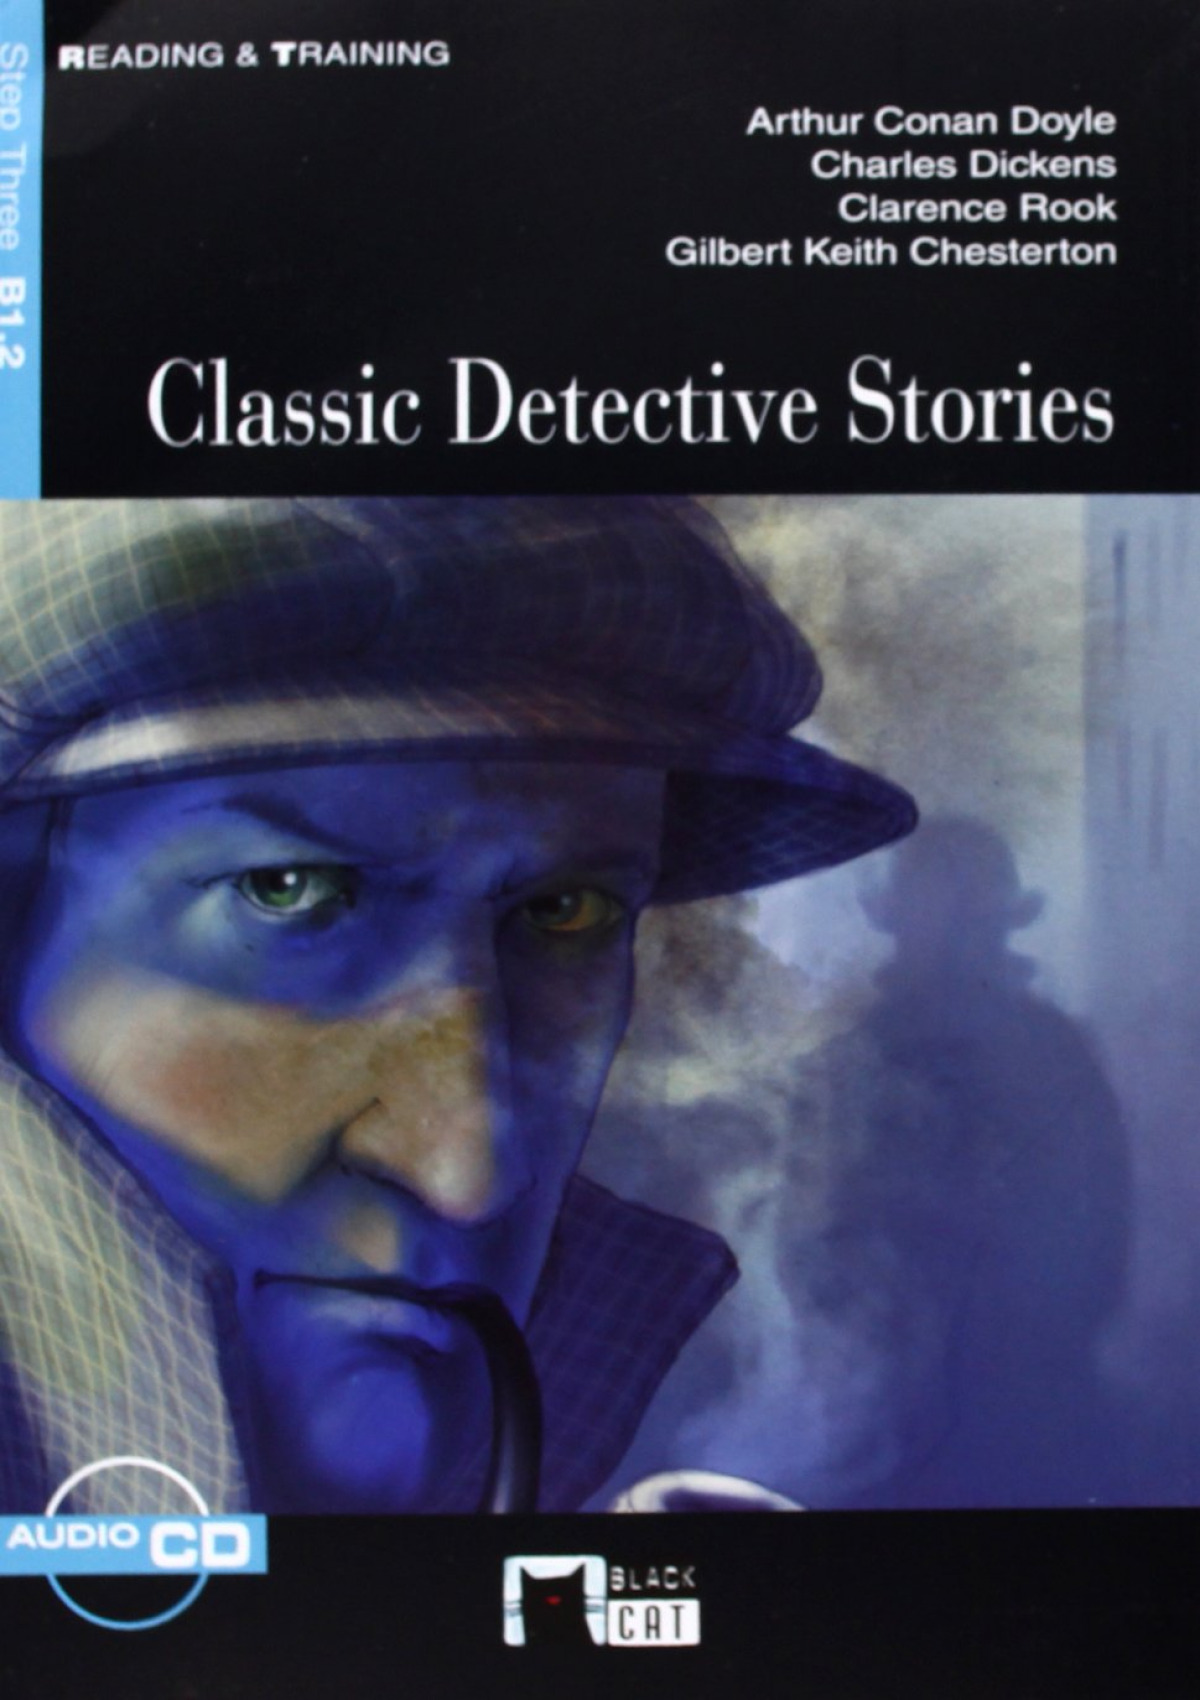 Classic Detective Stories ESO. Material auxiliar - Dickens, Charles                                  Conan Doyle, Arthur                               Rook, Clarence / Keith Chesterton, Gilbert